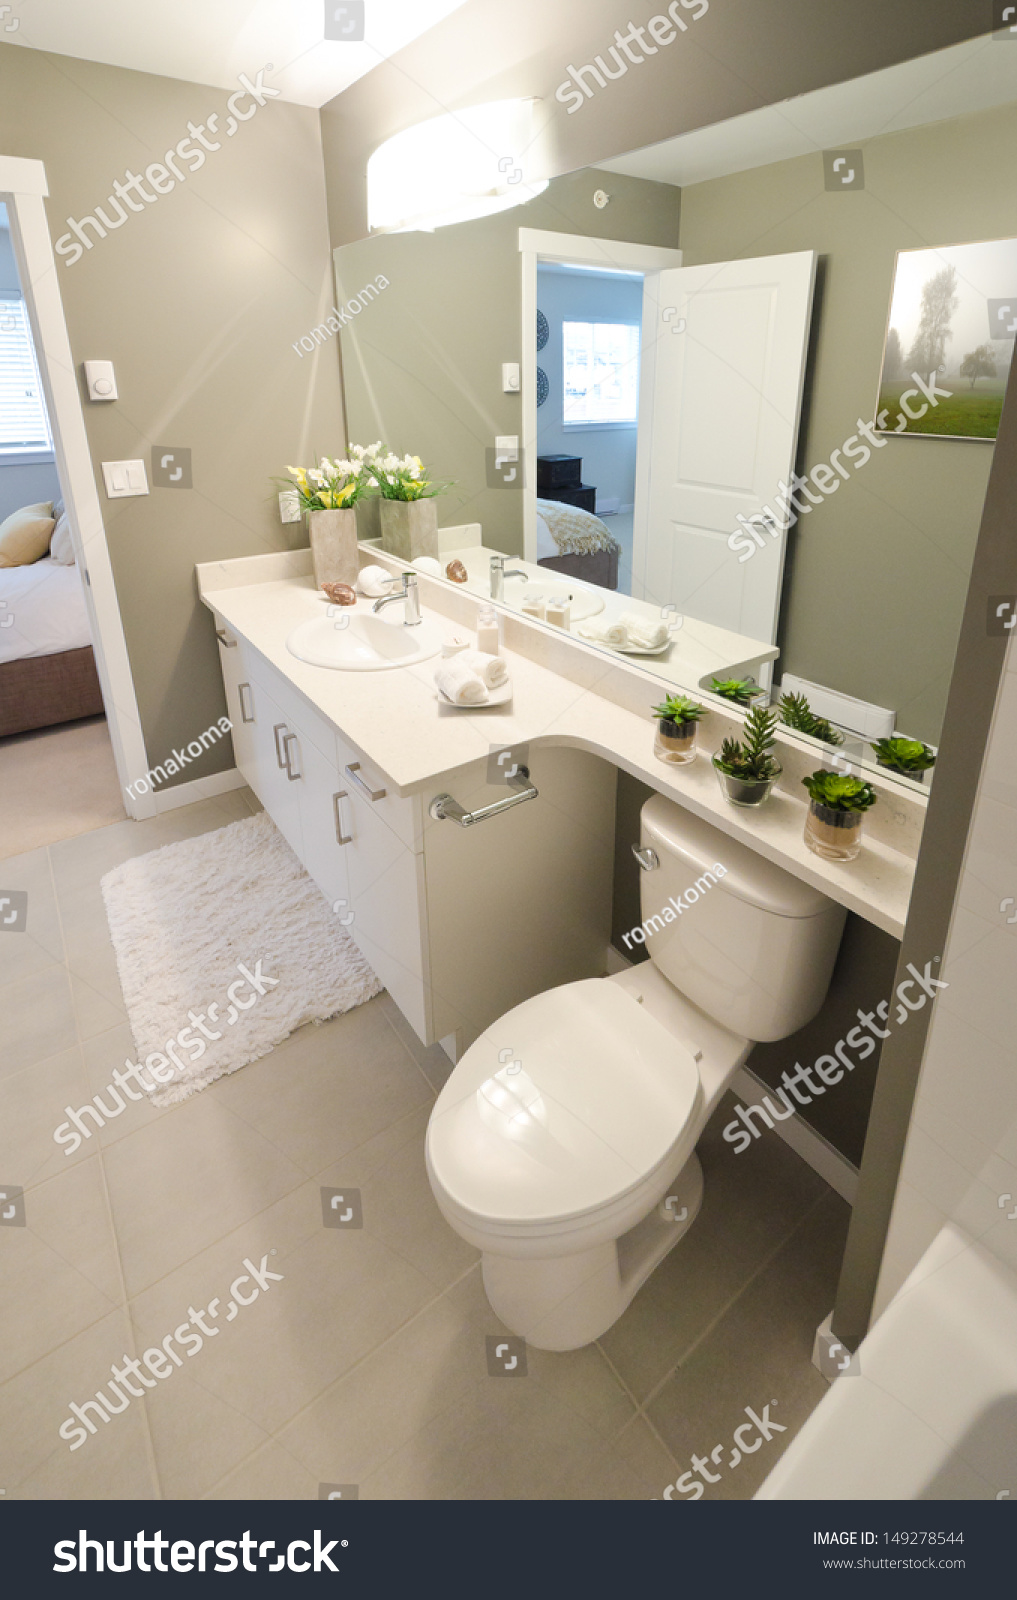 Nicely Decorated Modern Washroom, Bathroom With The Toilet Sit, Sink, Some Plants On The Shelf And Vase With Flowers. Interior Design. Vertical ...